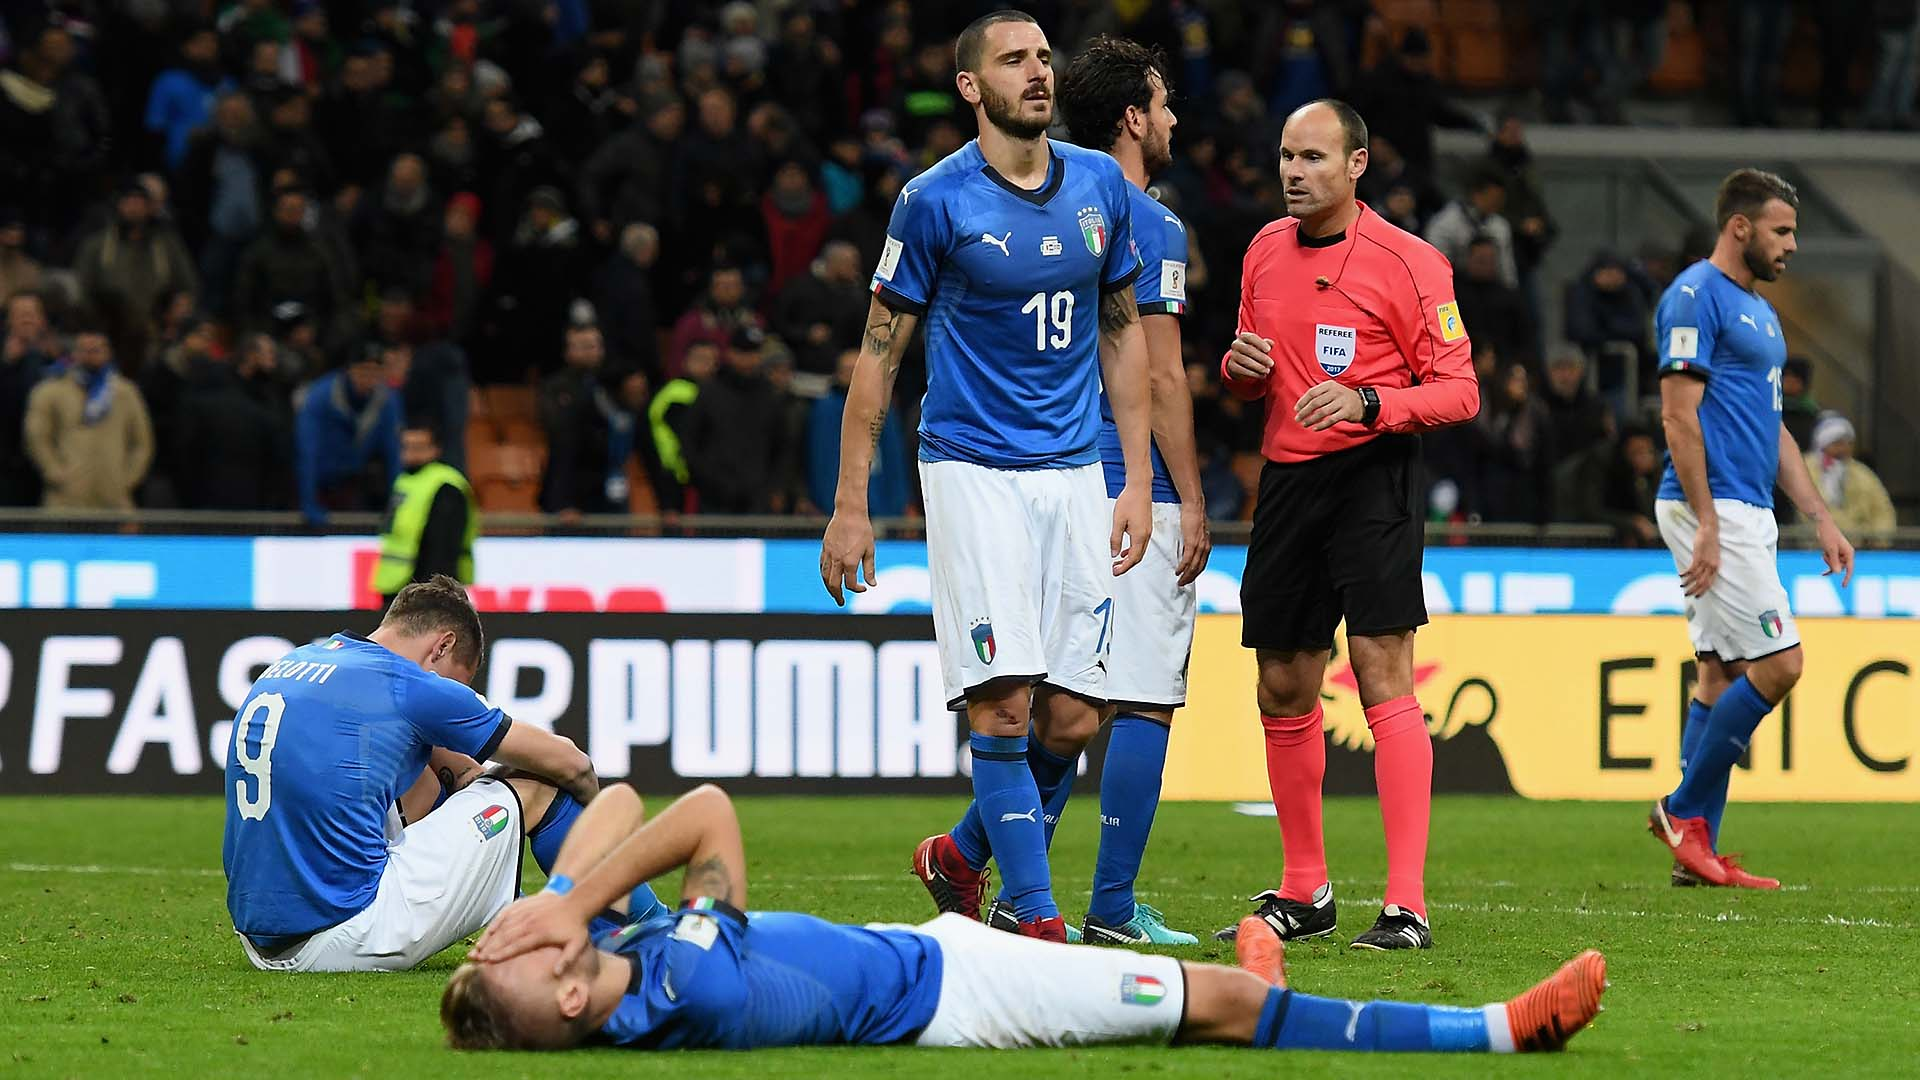 Italy coach sacked after failure to qualify for World Cup